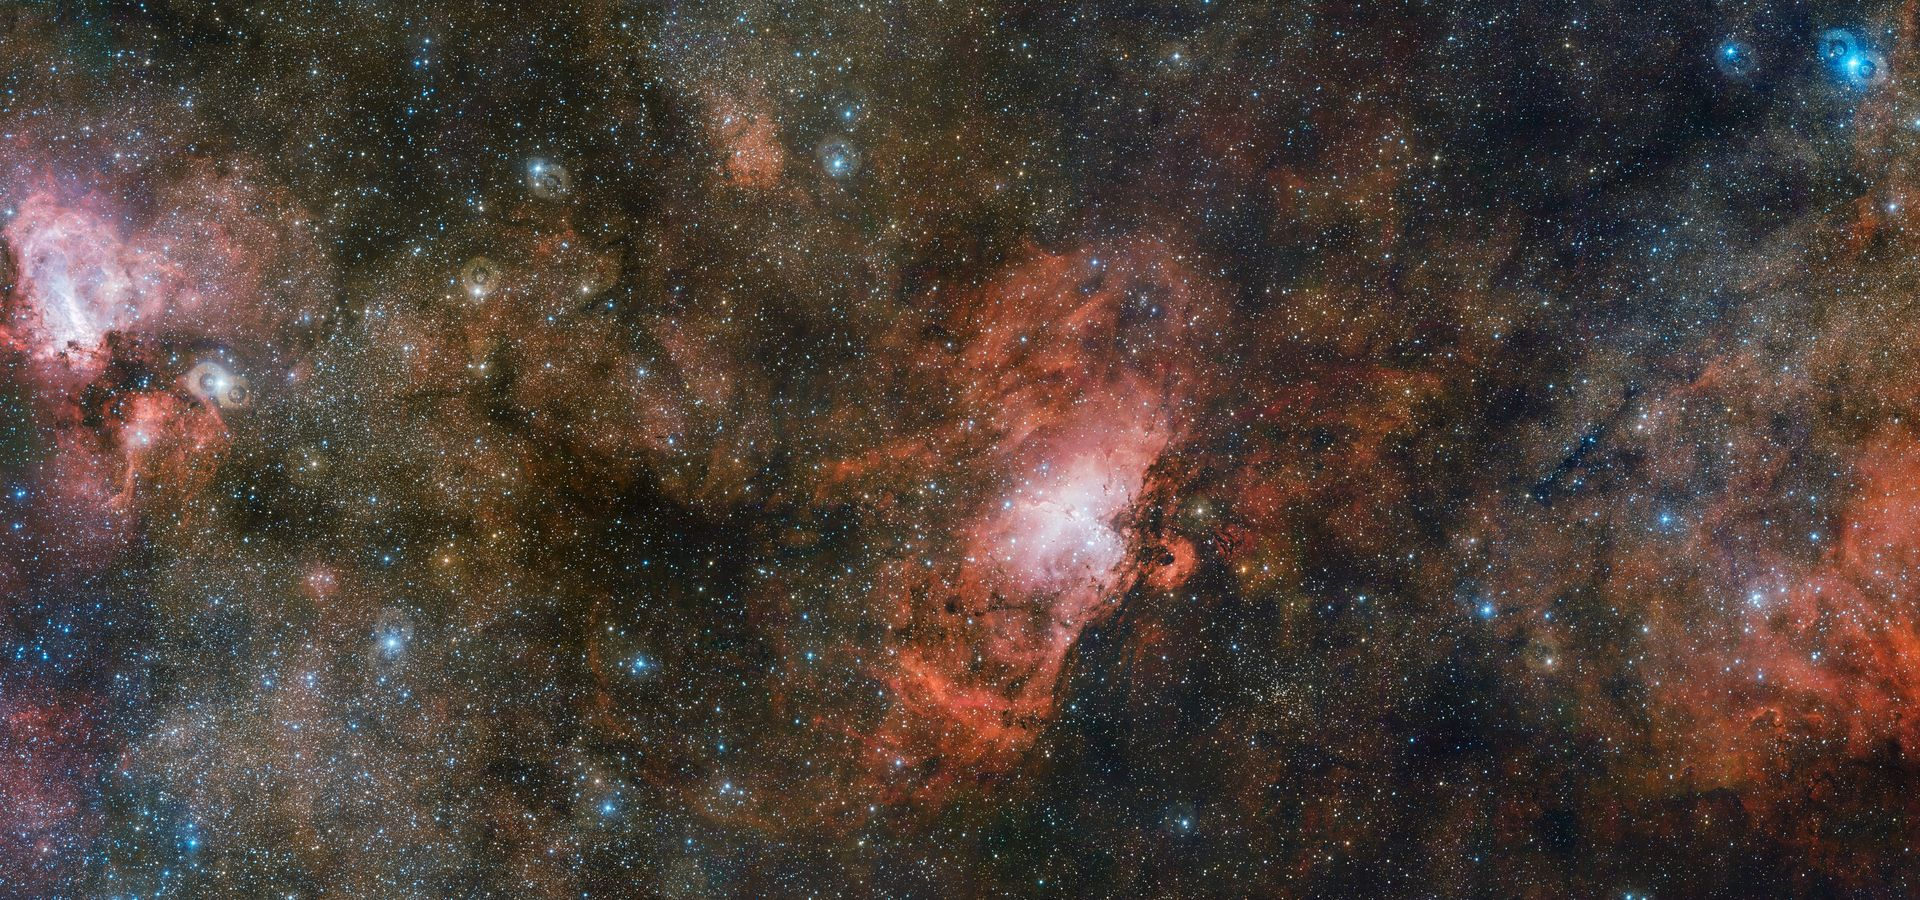 Stunning images and fantastic discoveries